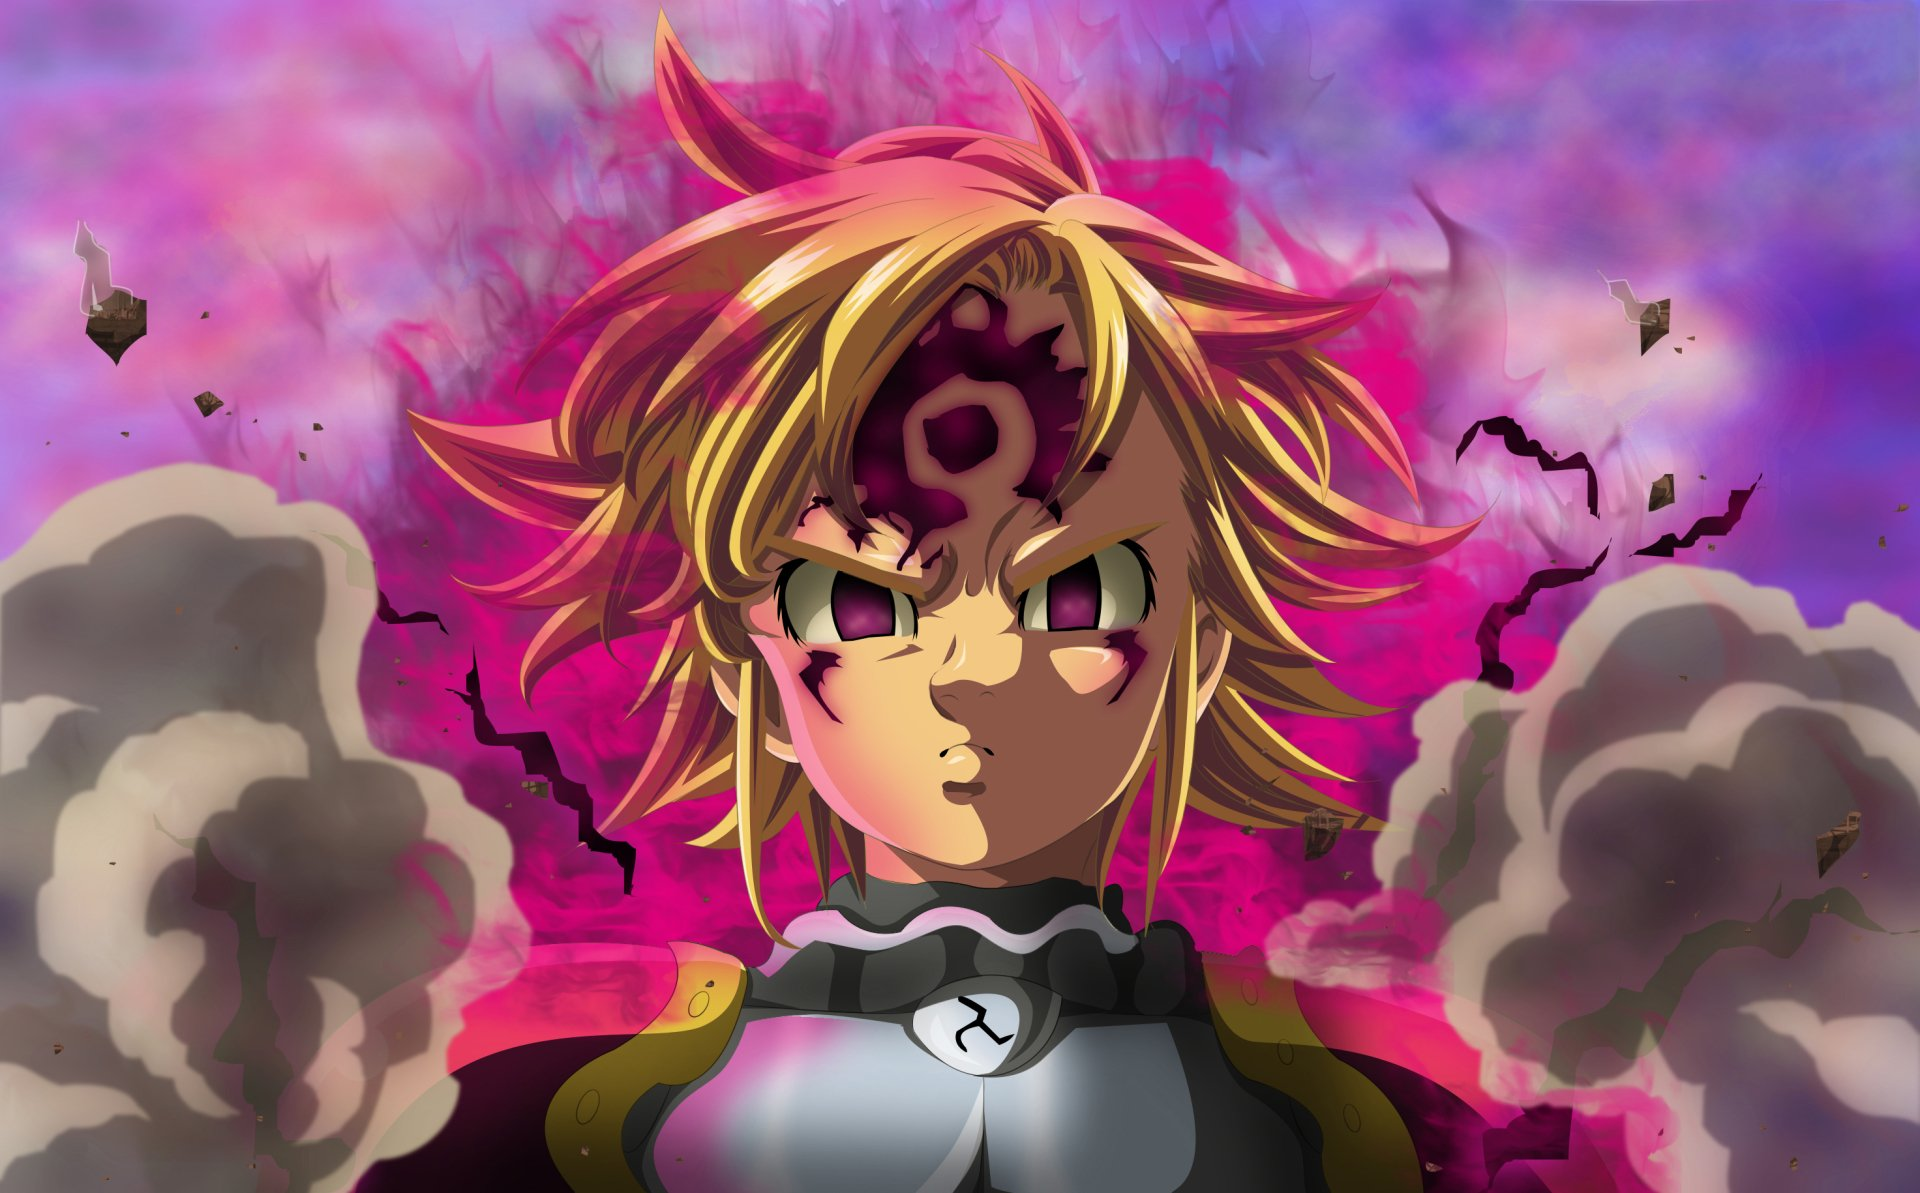 Meliodas Wallpaper Hd The Seven Deadly Sins Full Hd Wallpaper And Background